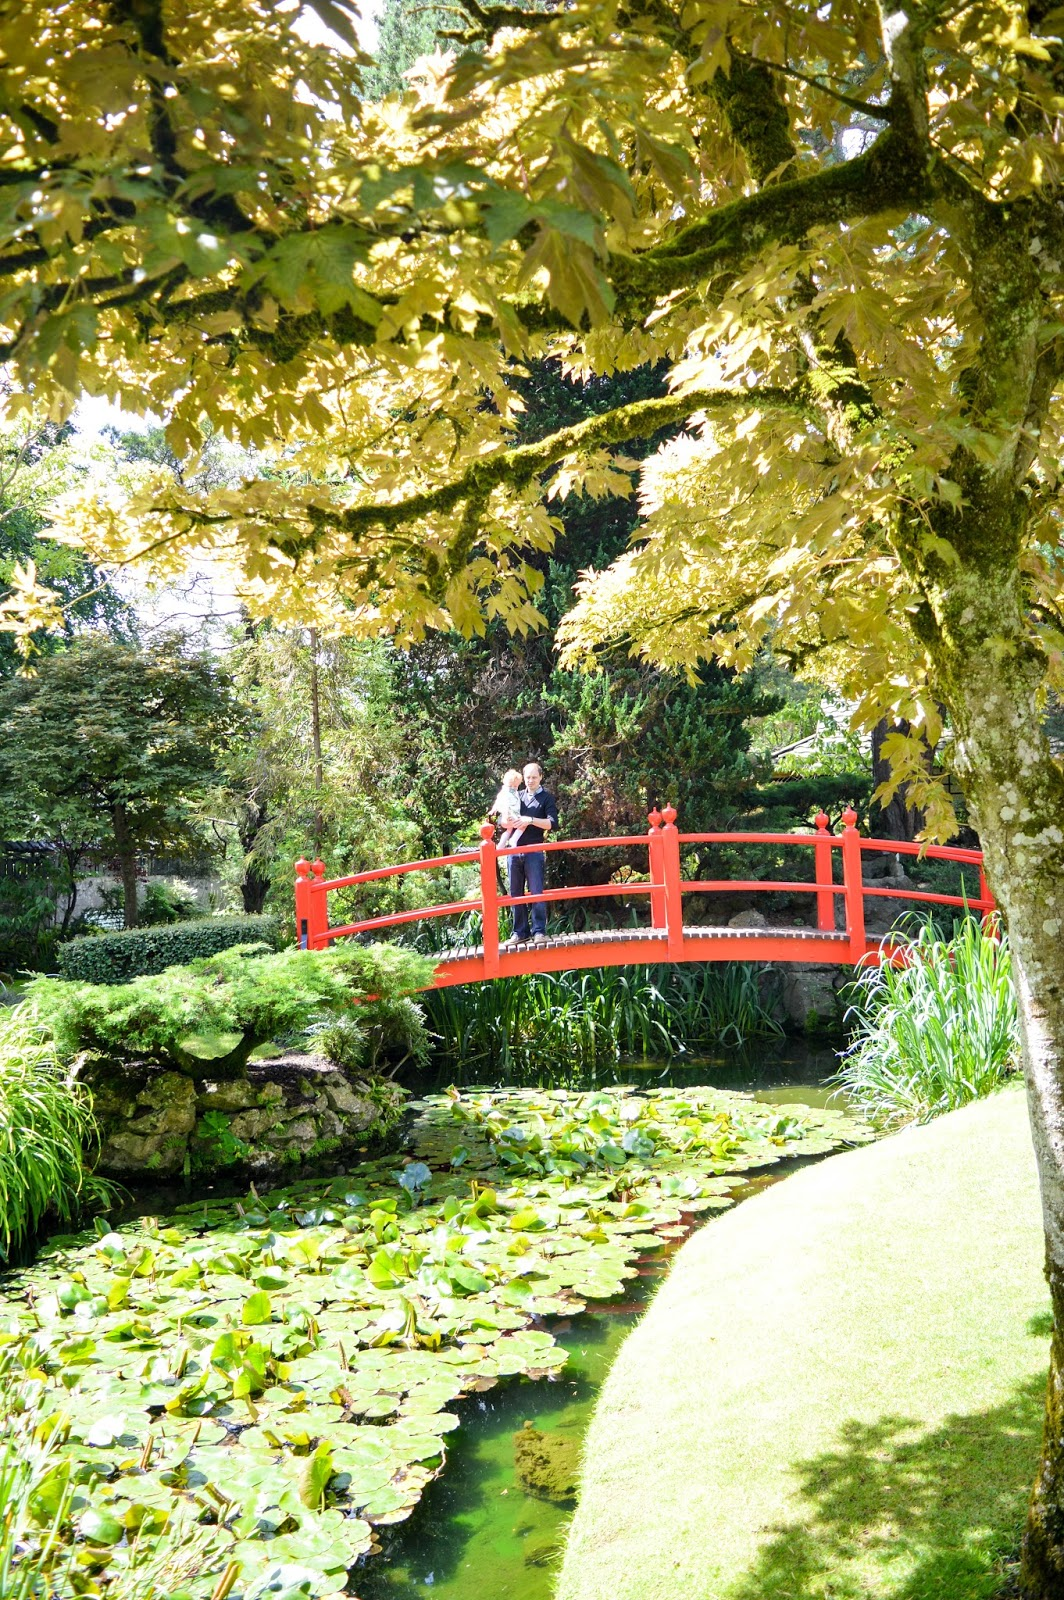 Irish National Stud & Japanese Garden, Co. Kildare